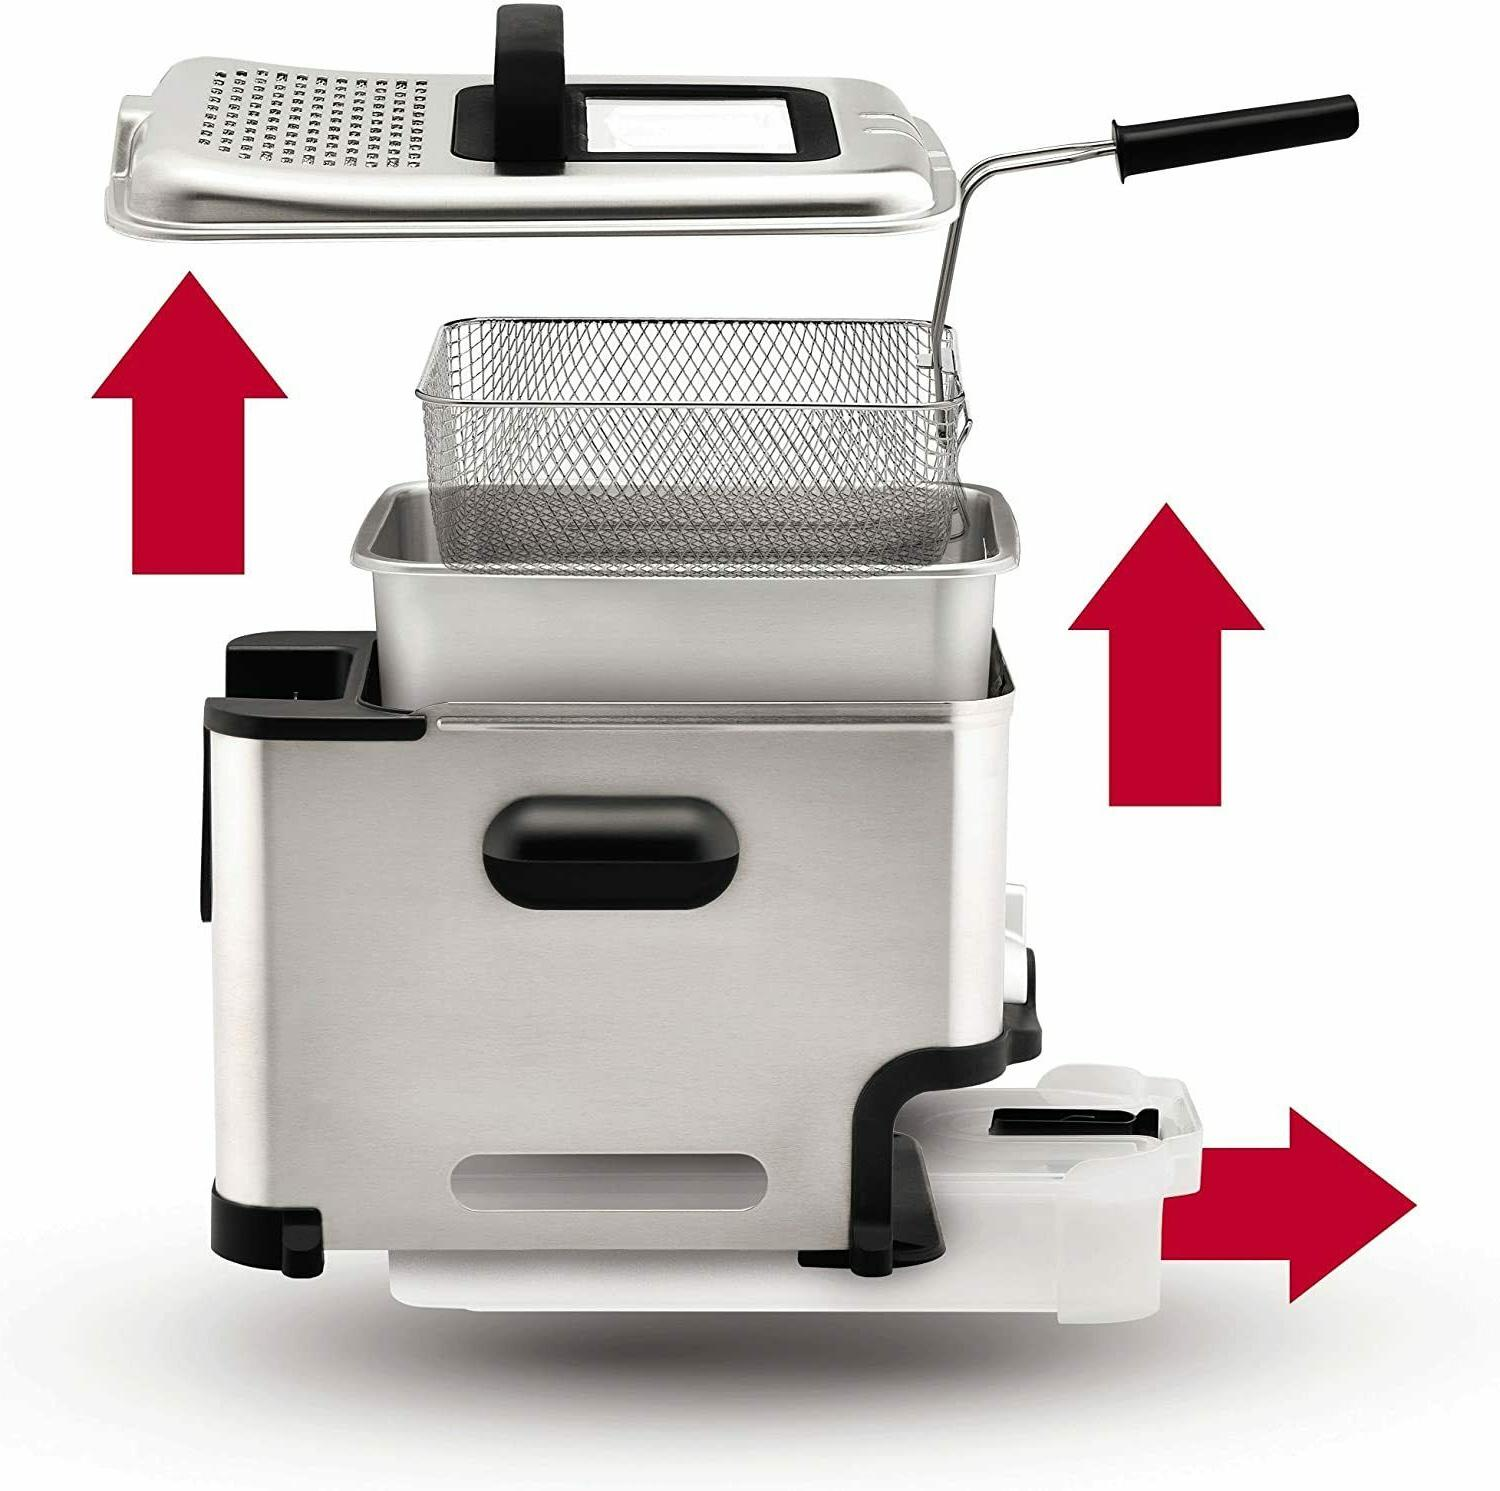 T-fal FR8000 Deep Fryer with Basket - Stainless Steel